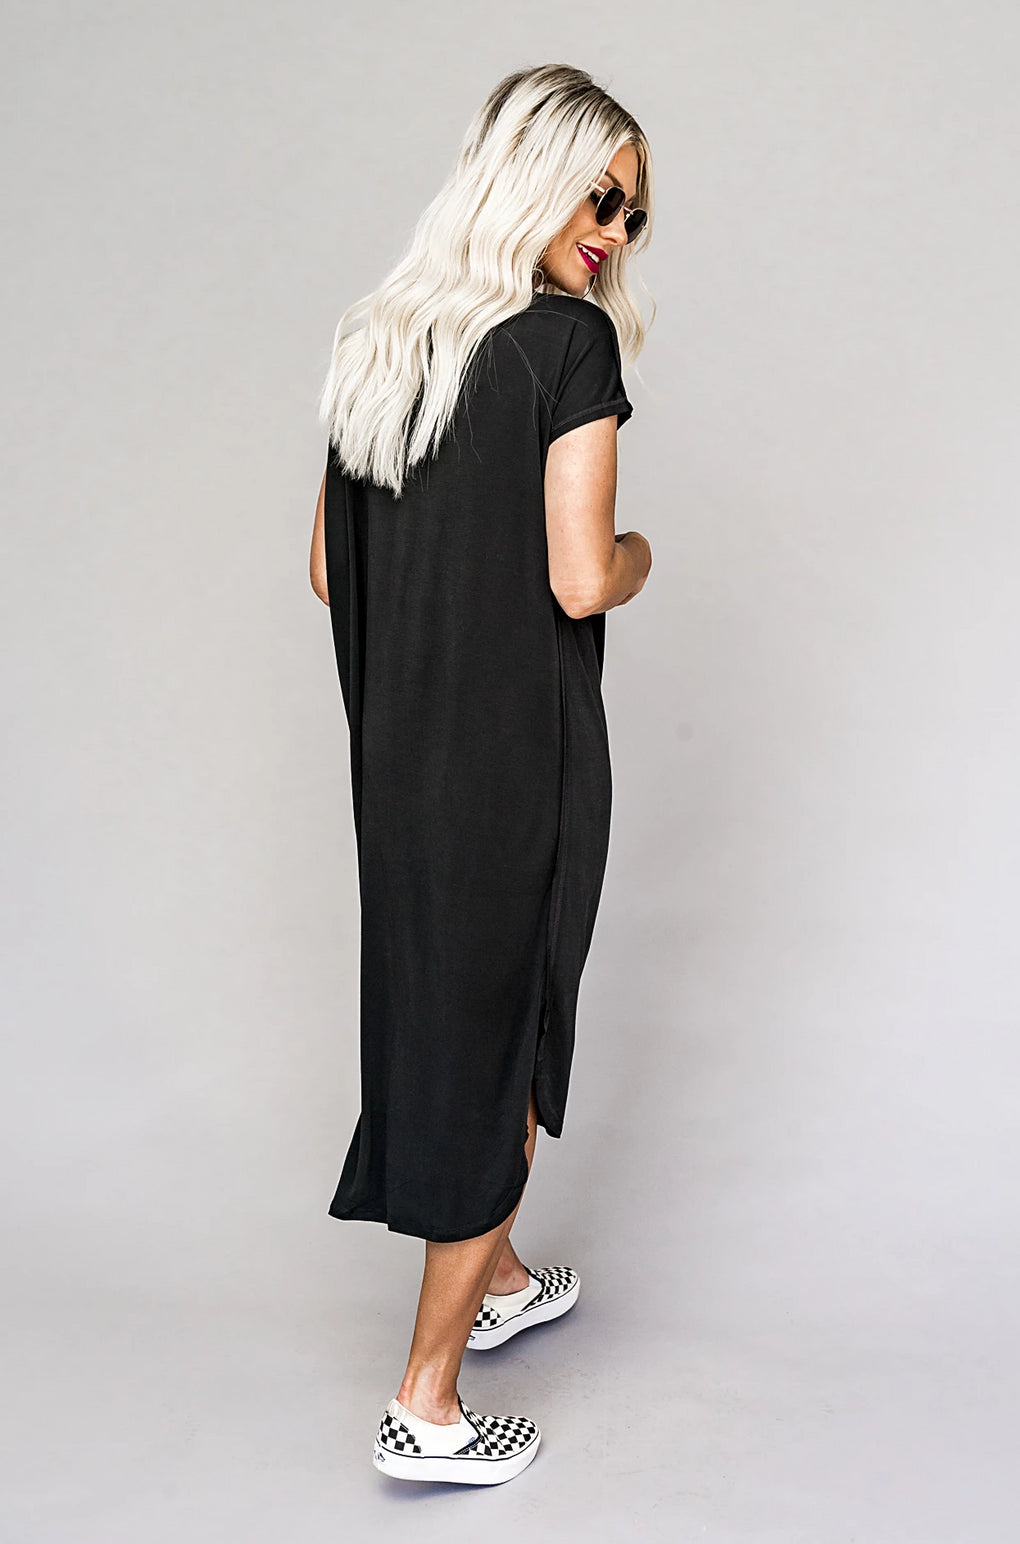 Obsessed Black T-shirt Dress